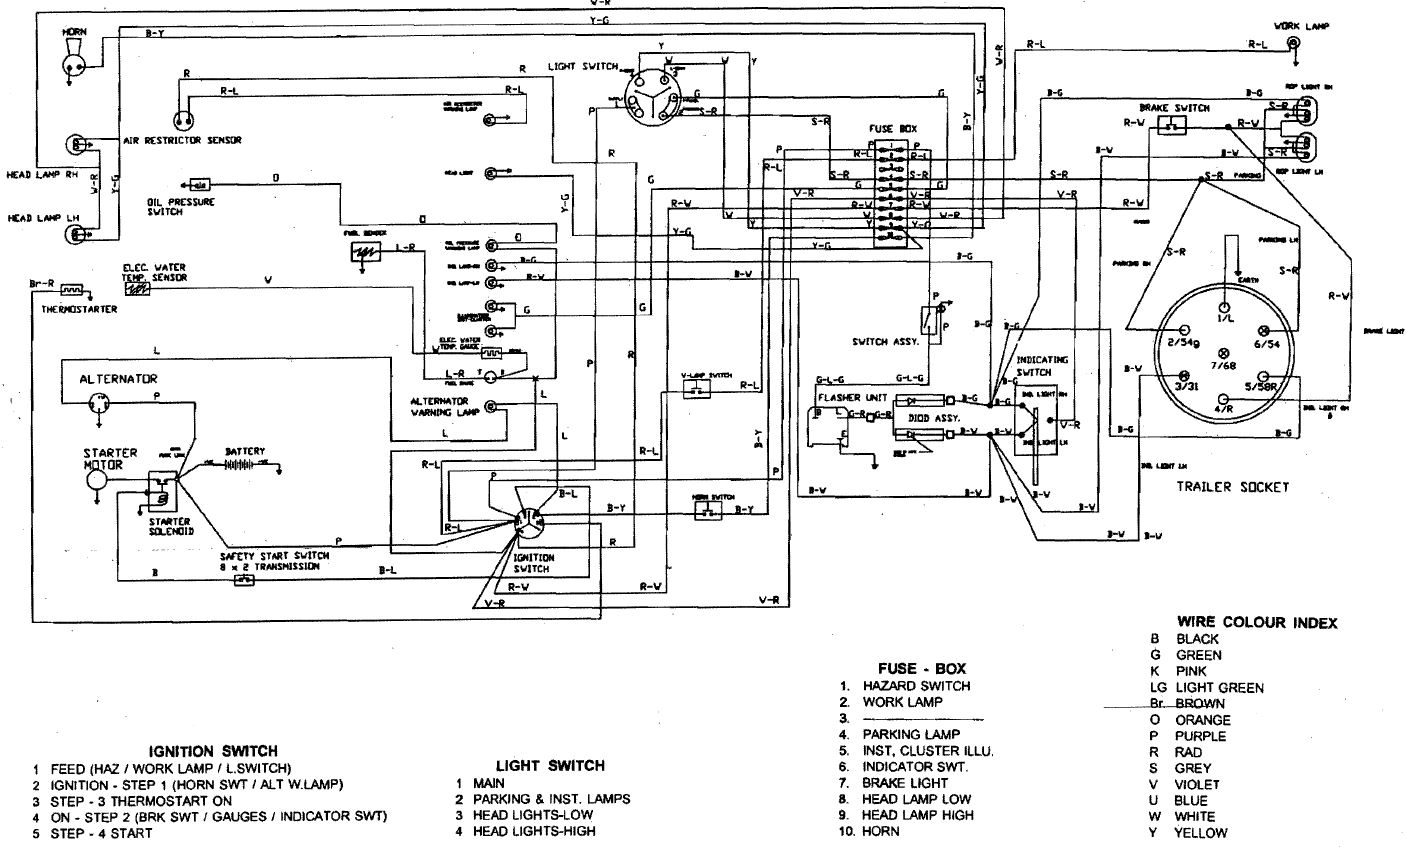 ignition switch wiring diagram Wiring Equipment Diagrams856tractor